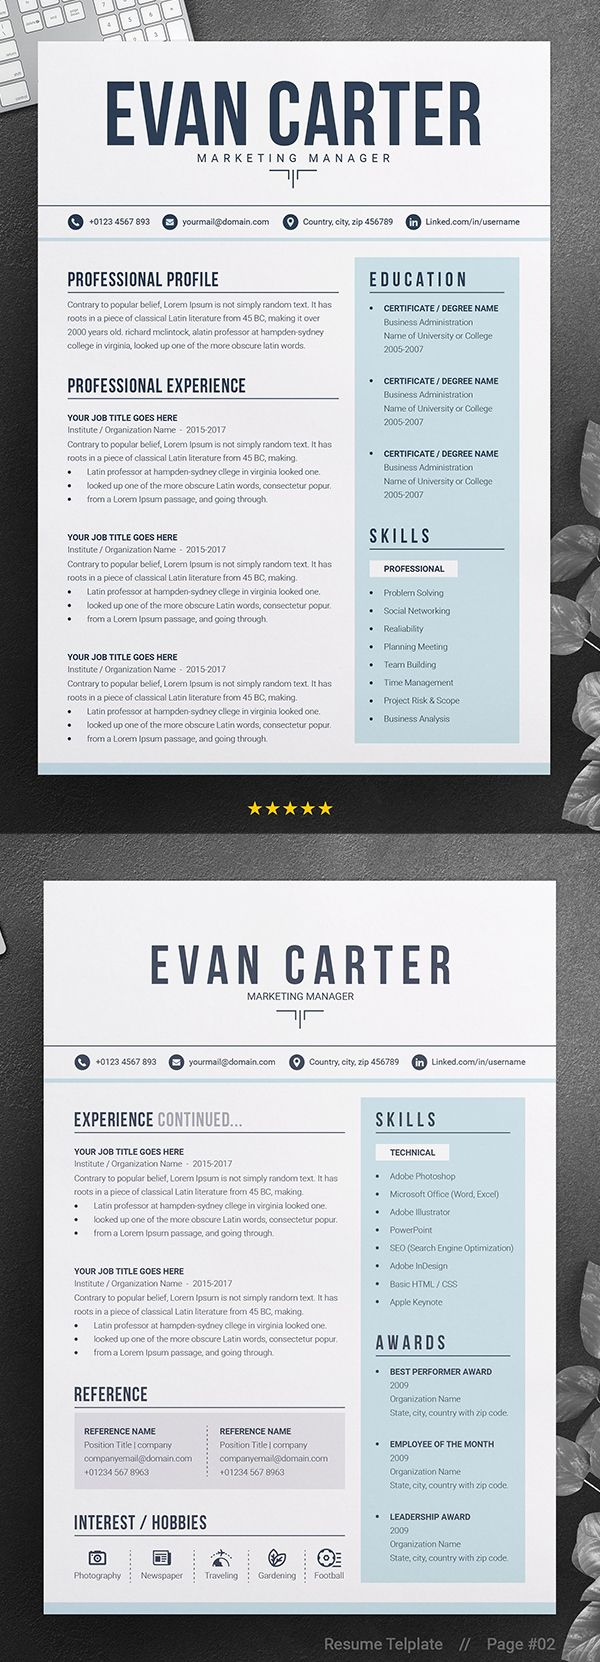 Modern Professional Resume Cv Cv Simple Presentation Cv Cv Moderne